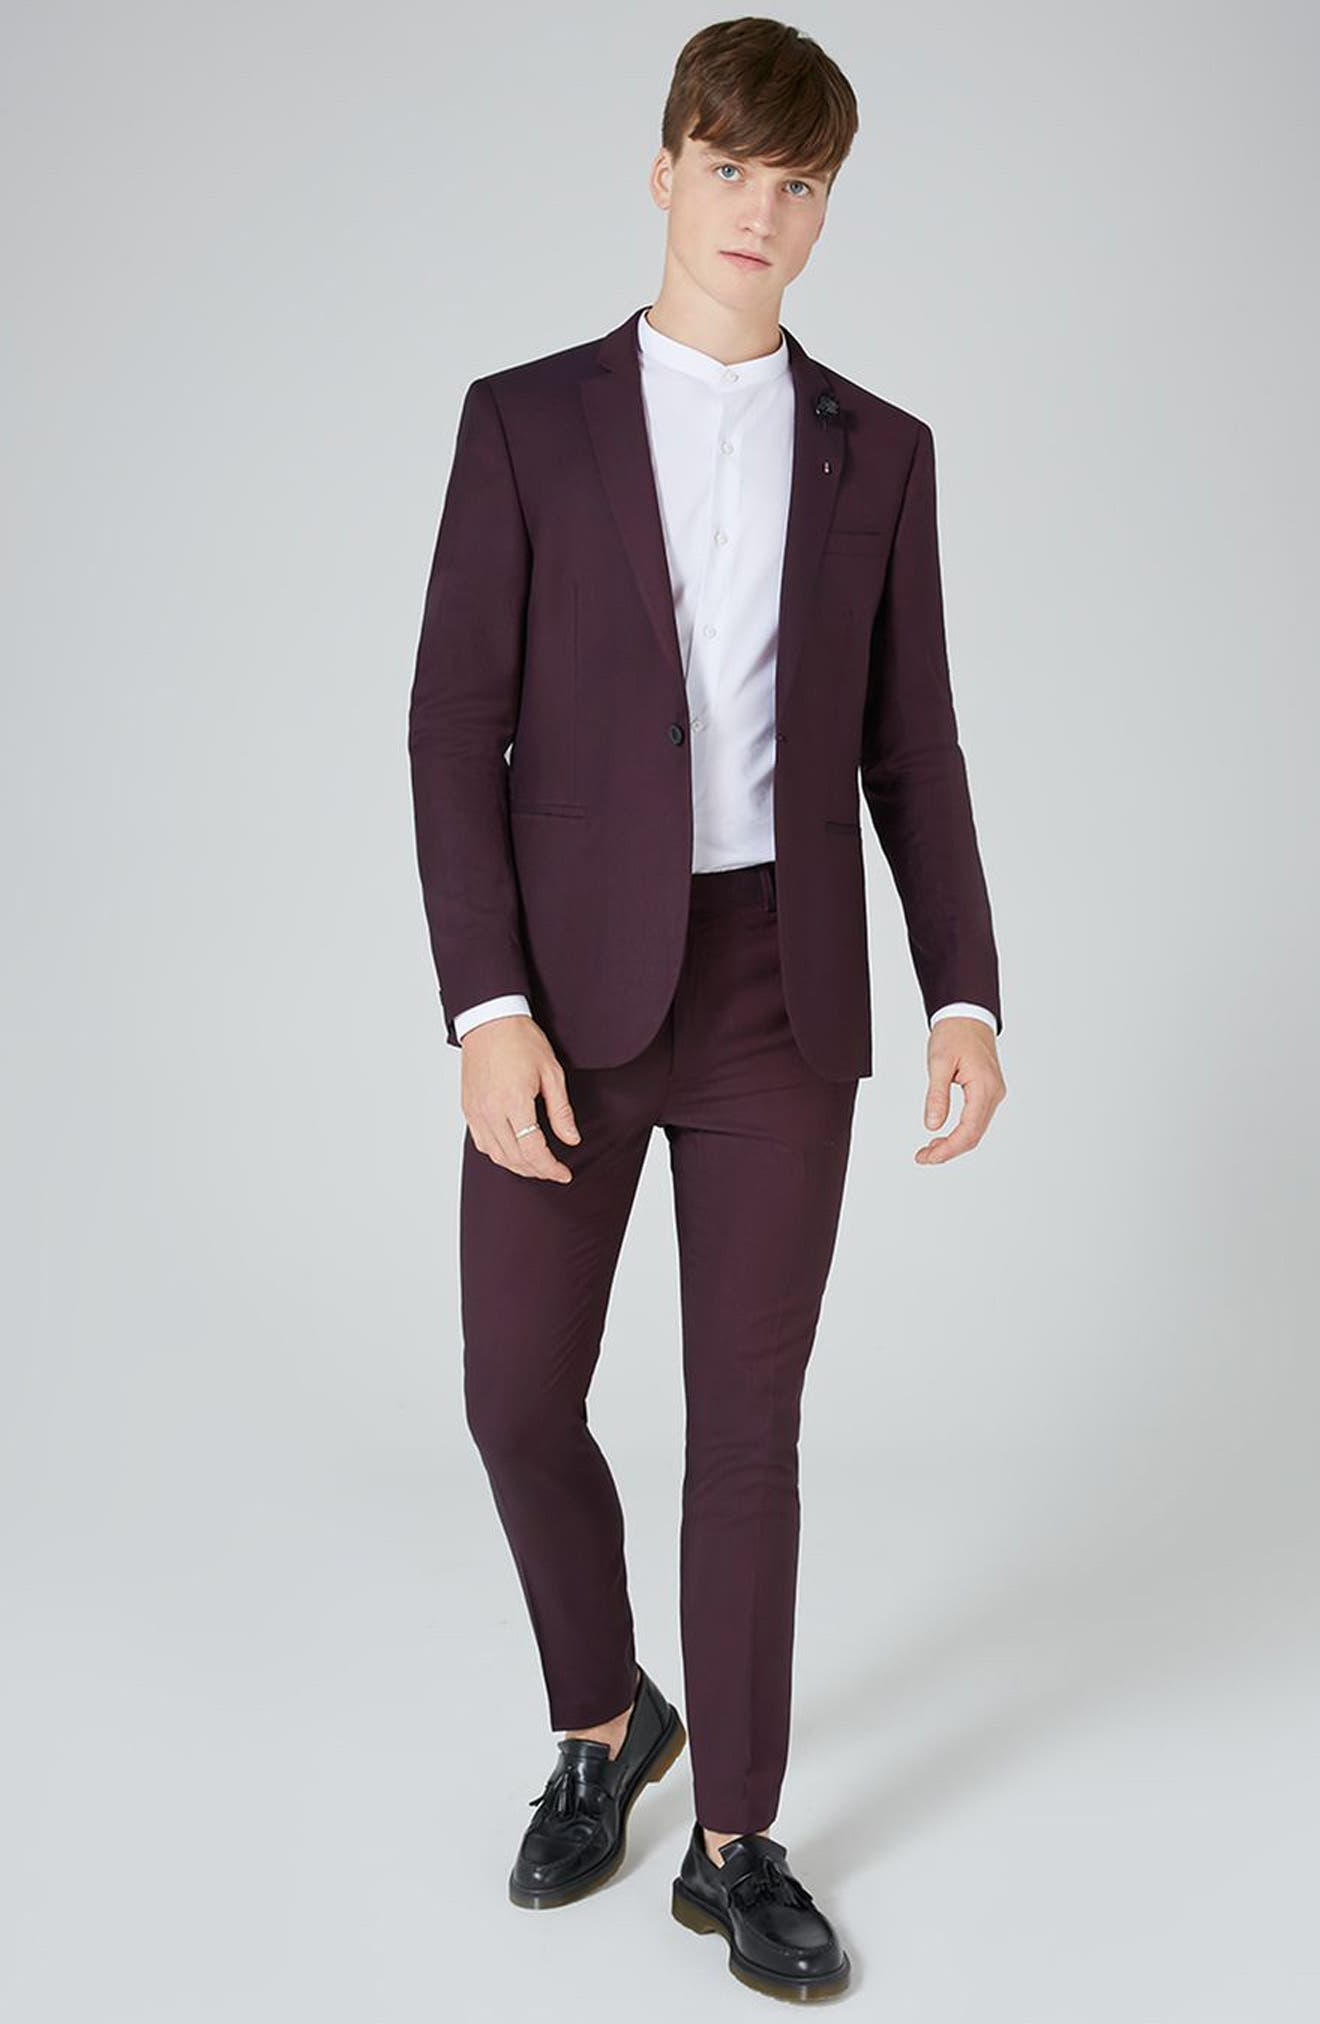 Skinny Fit Plum One-Button Suit Jacket,                             Alternate thumbnail 2, color,                             Plum